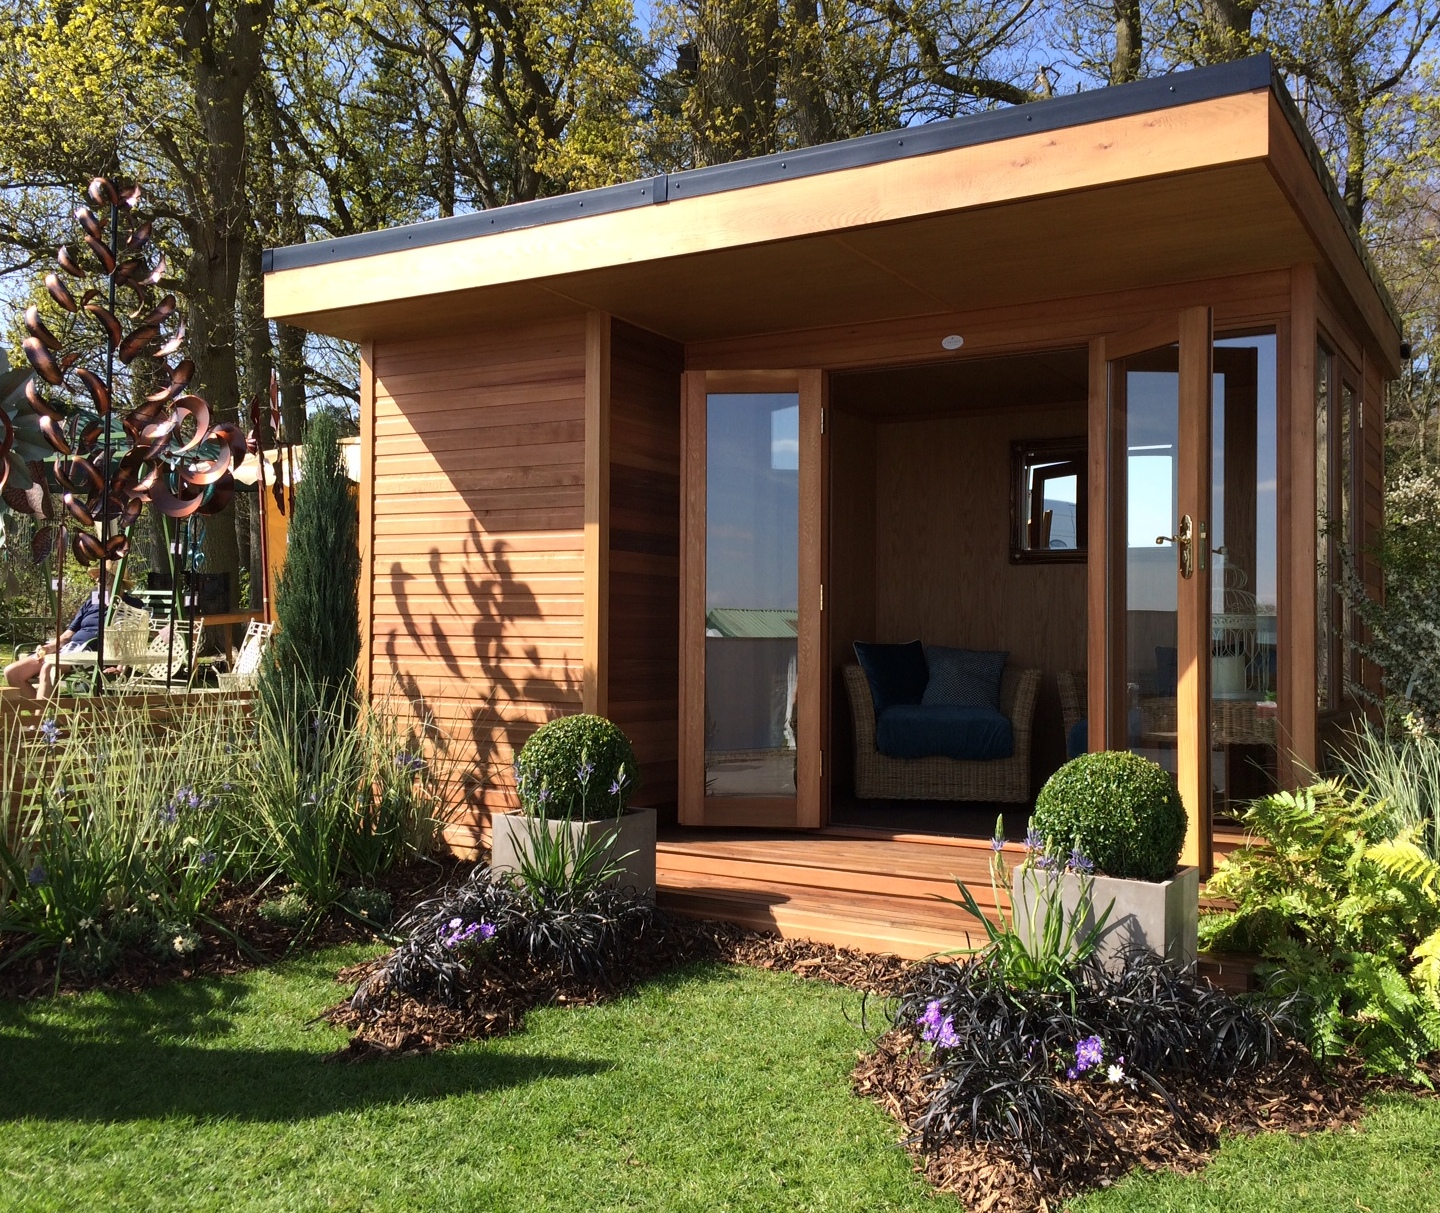 Summerhouse Archives Chelsea Summerhouses Traditional Handmade Summer Houses Built Using The